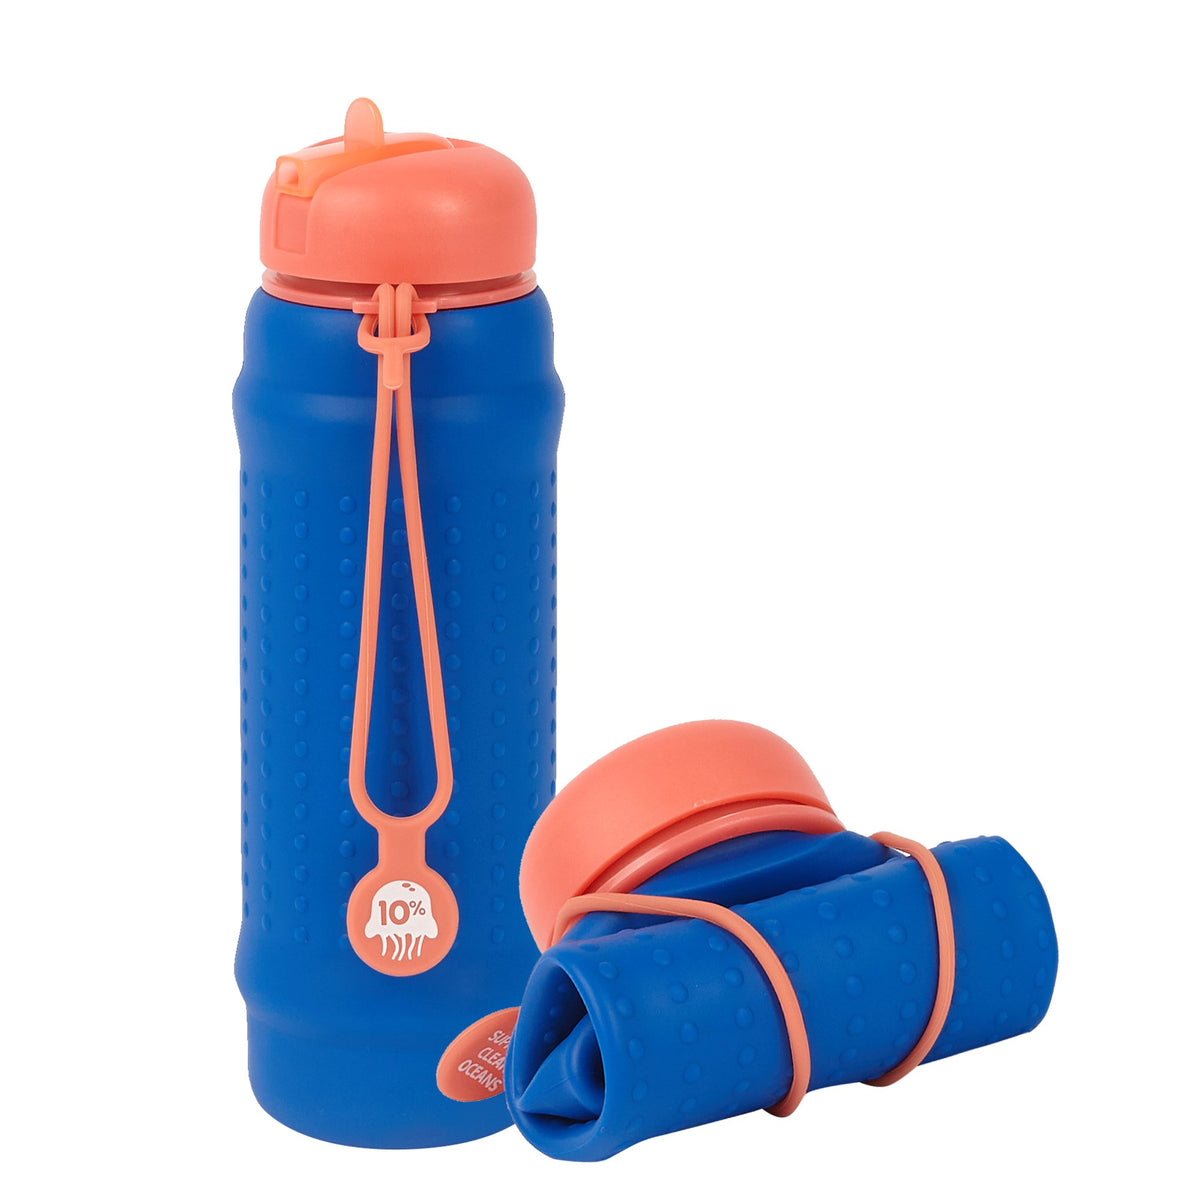 Rolla Bottle - Cobalt, Coral Lid + Coral Strap - tall and rolled